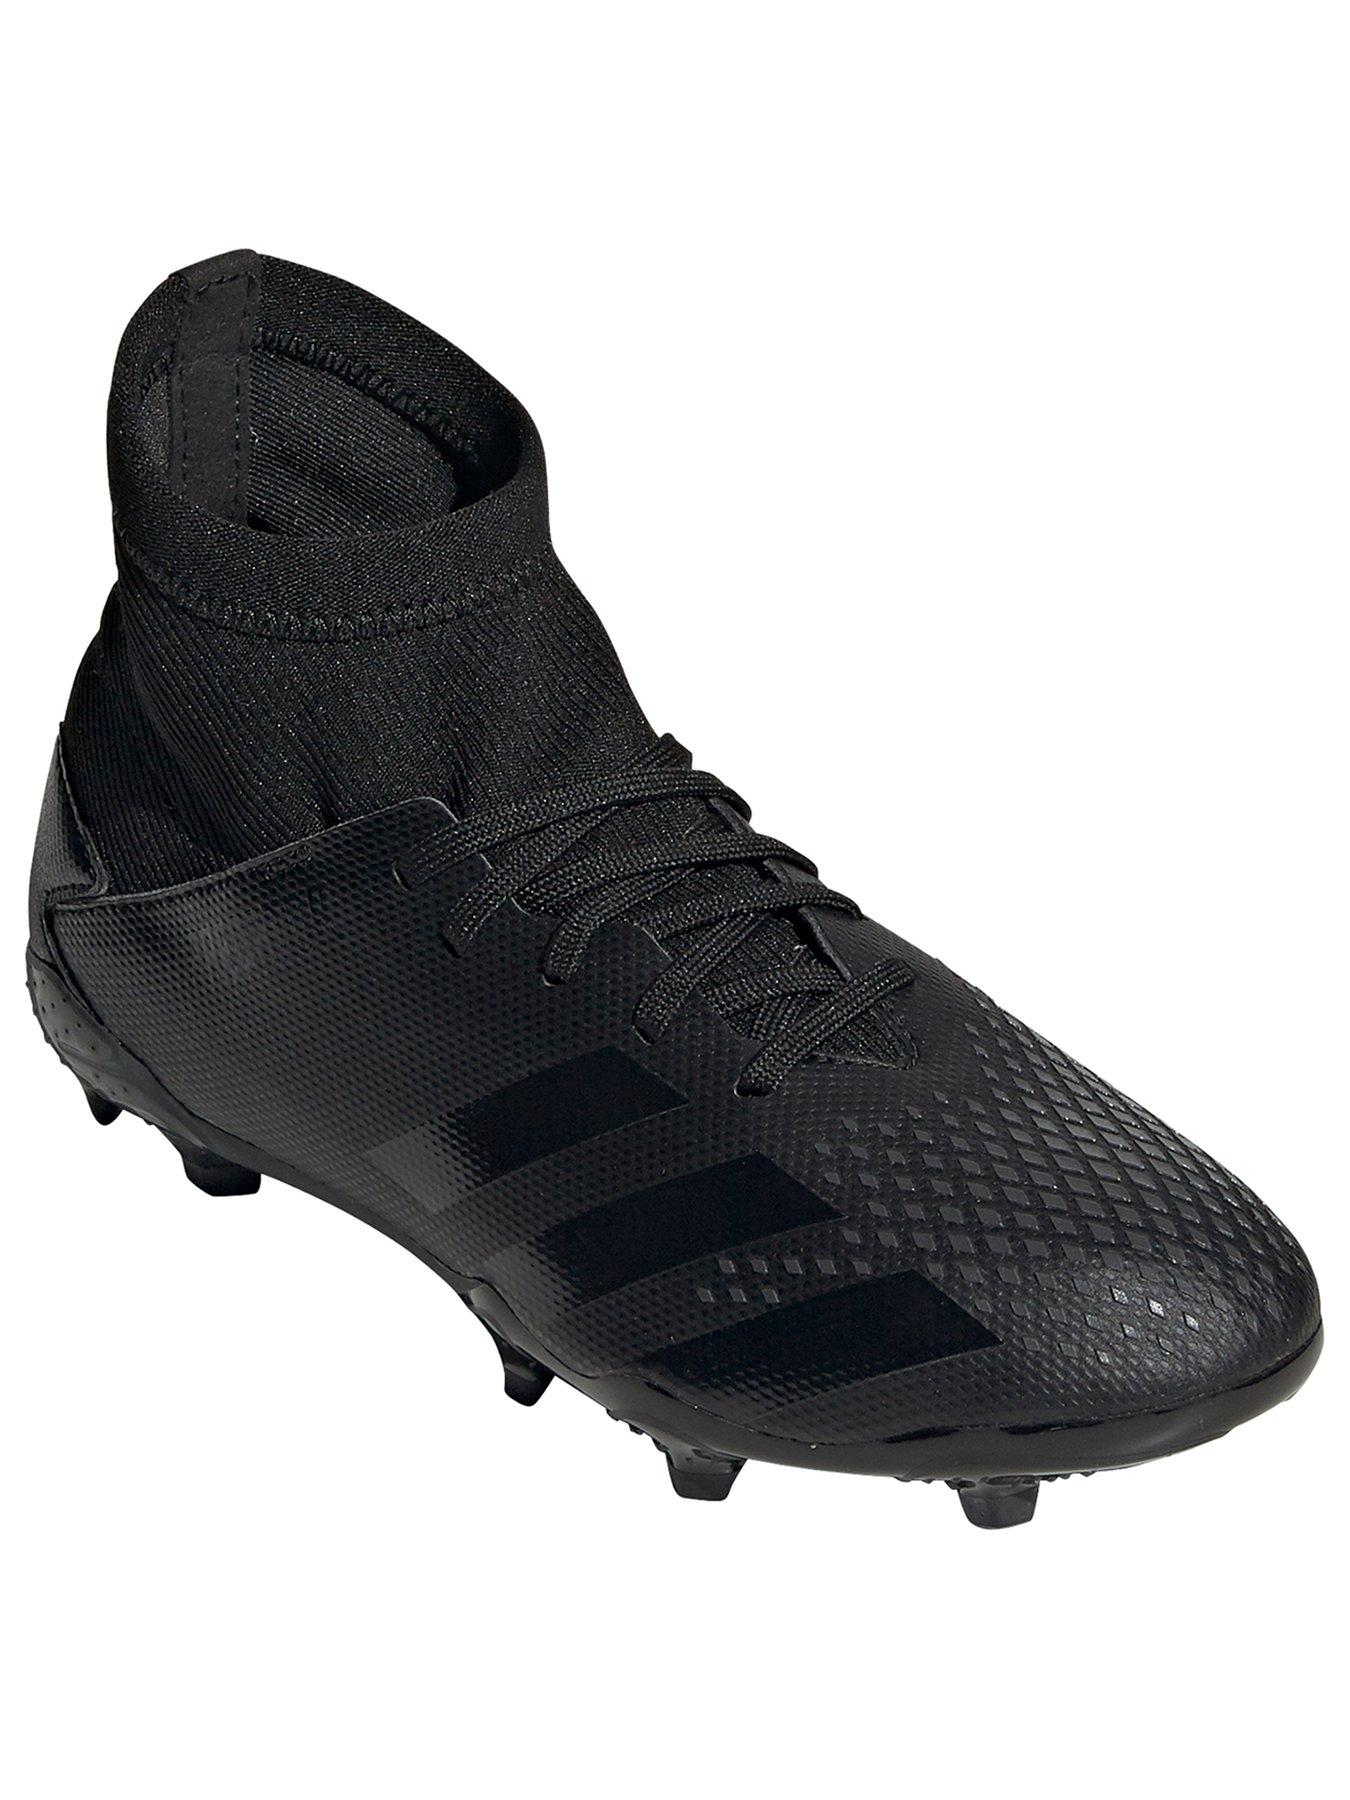 infant size 7 football boots